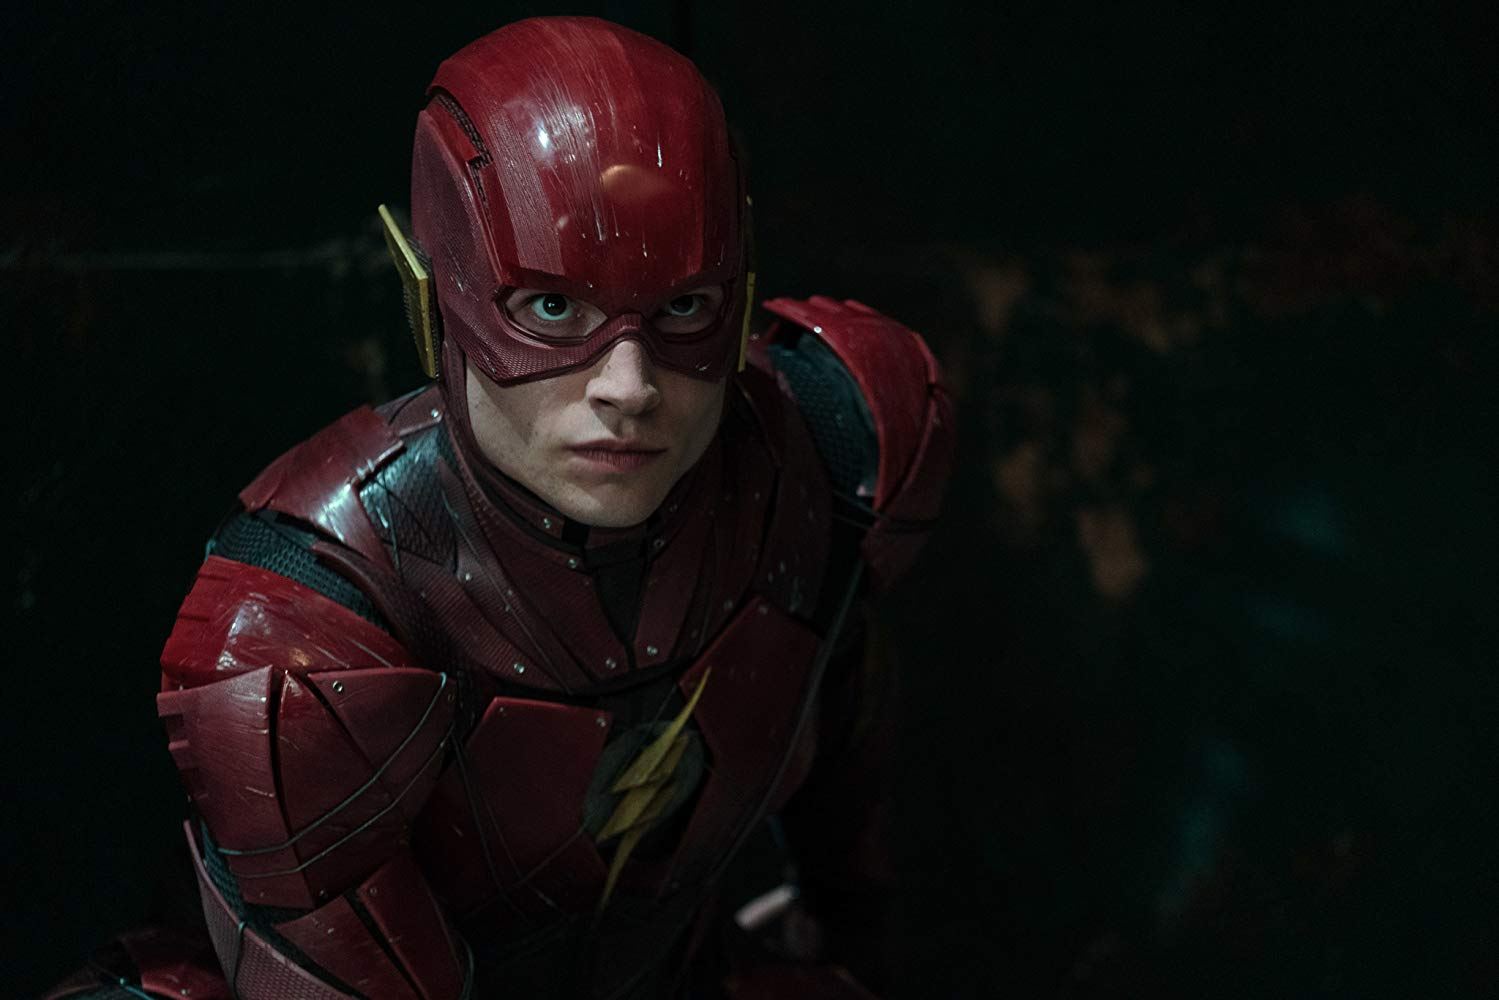 The Flash (Ezra Miller) in Justice League (2017)